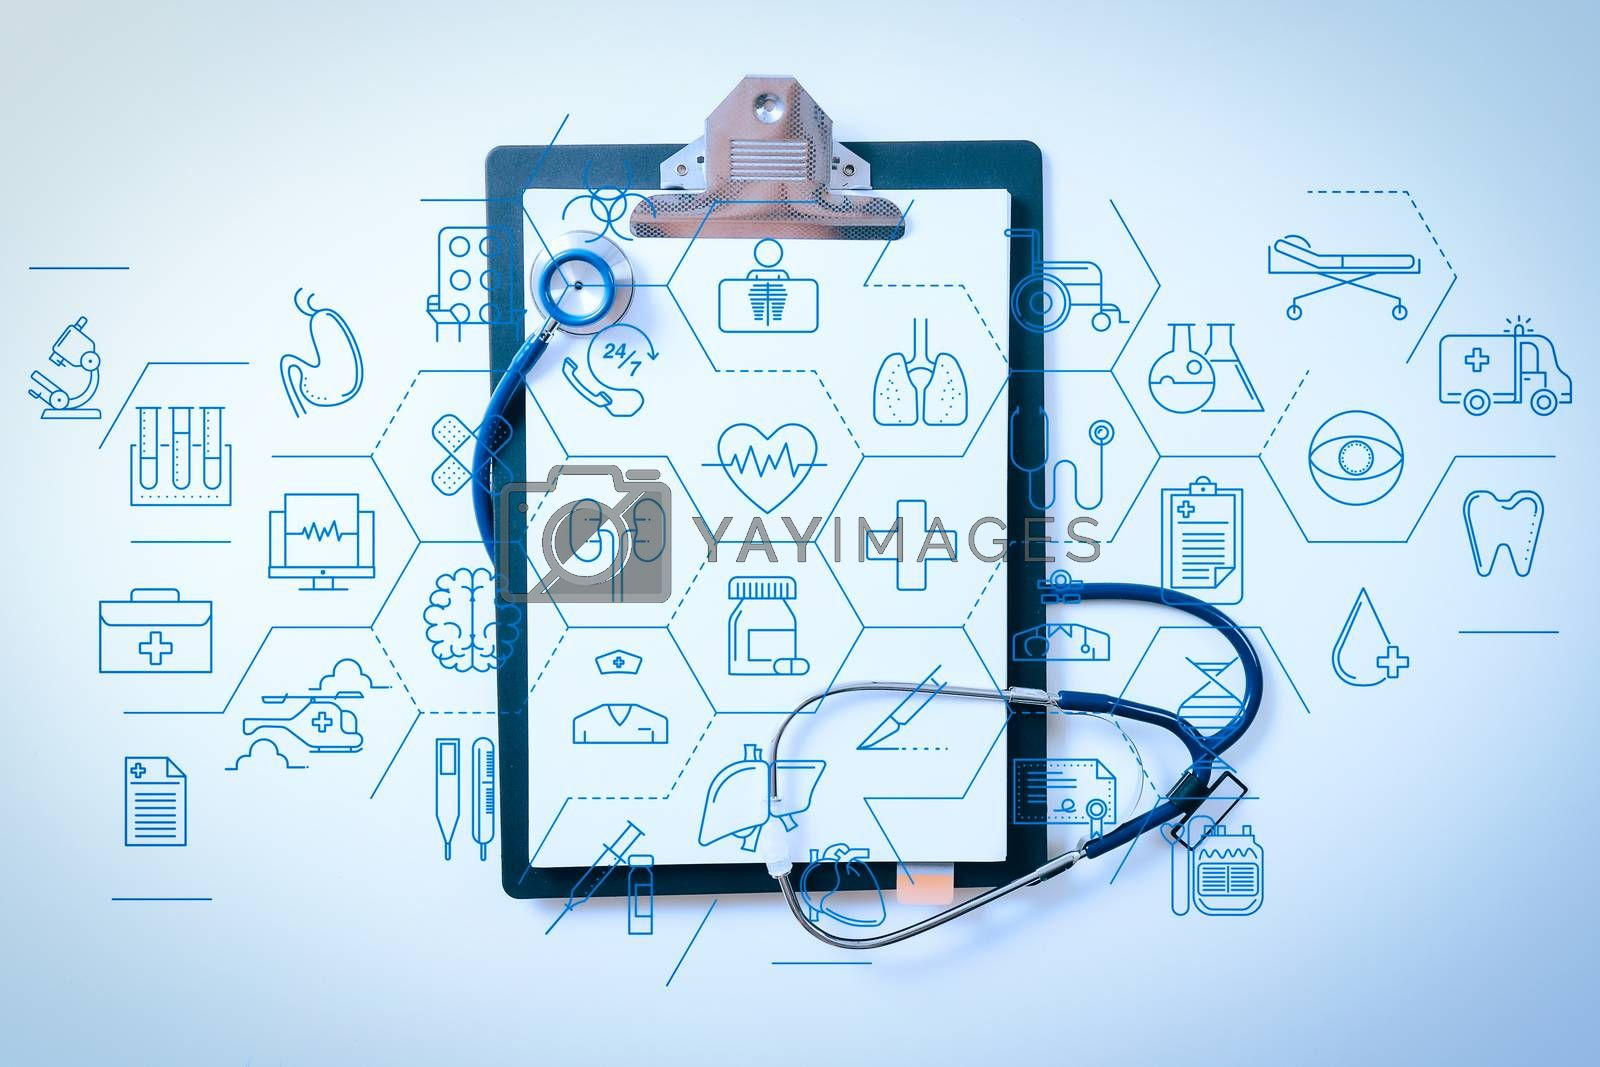 Royalty free image of blank stethoscope and gray clipboard on white desk background by everythingpossible